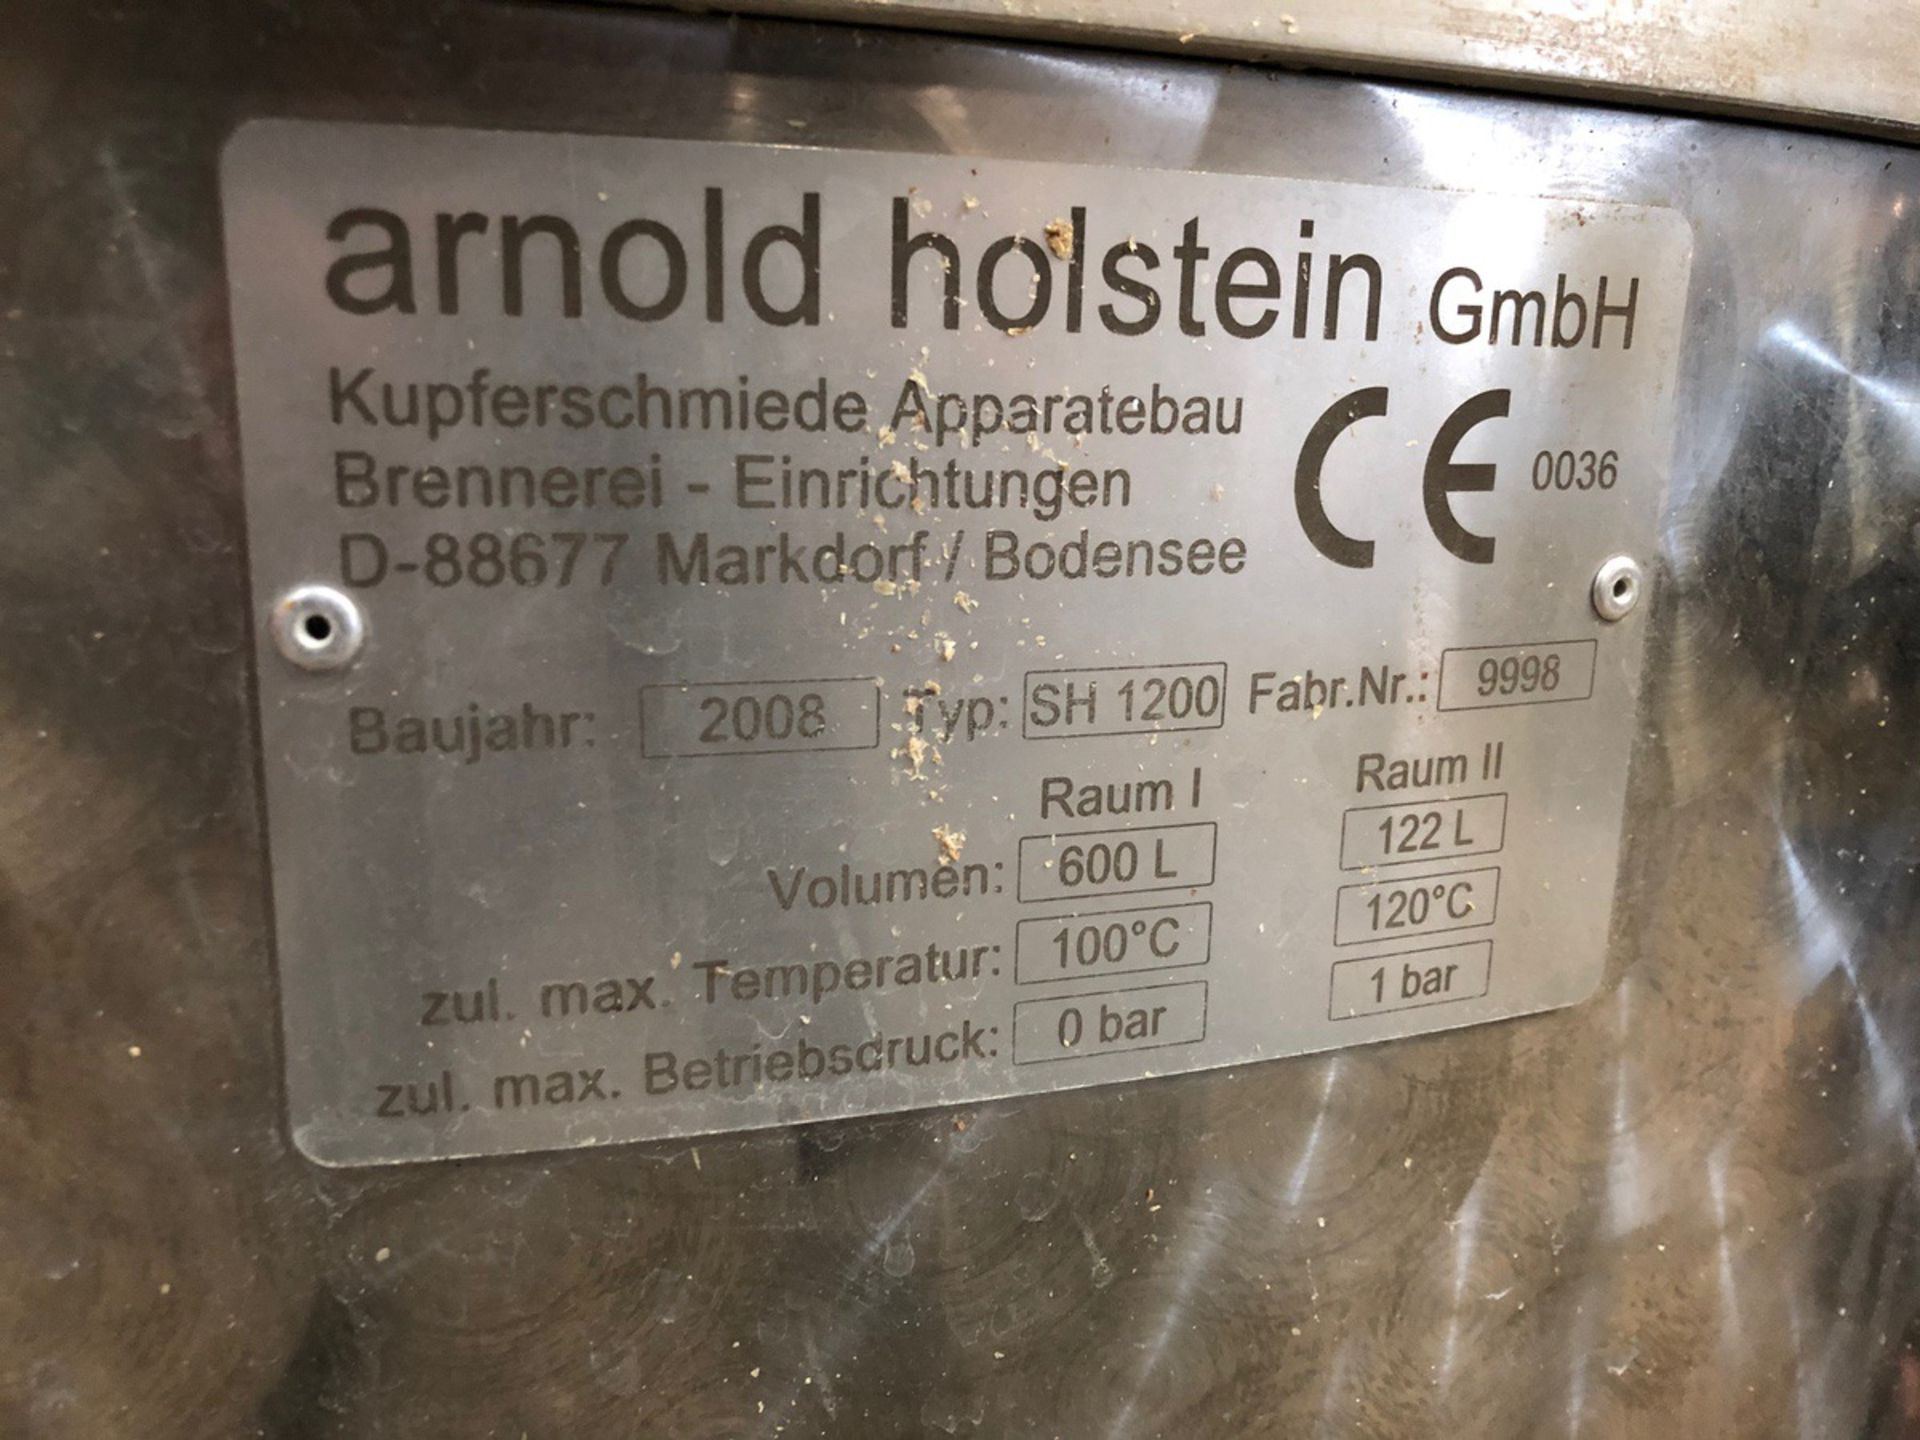 Lot 1 - 2008 Arnold Holstein Type SH1200 600L Still, Heads & Hearts Tank | Sub to Bulk | Rig Fee: $3300